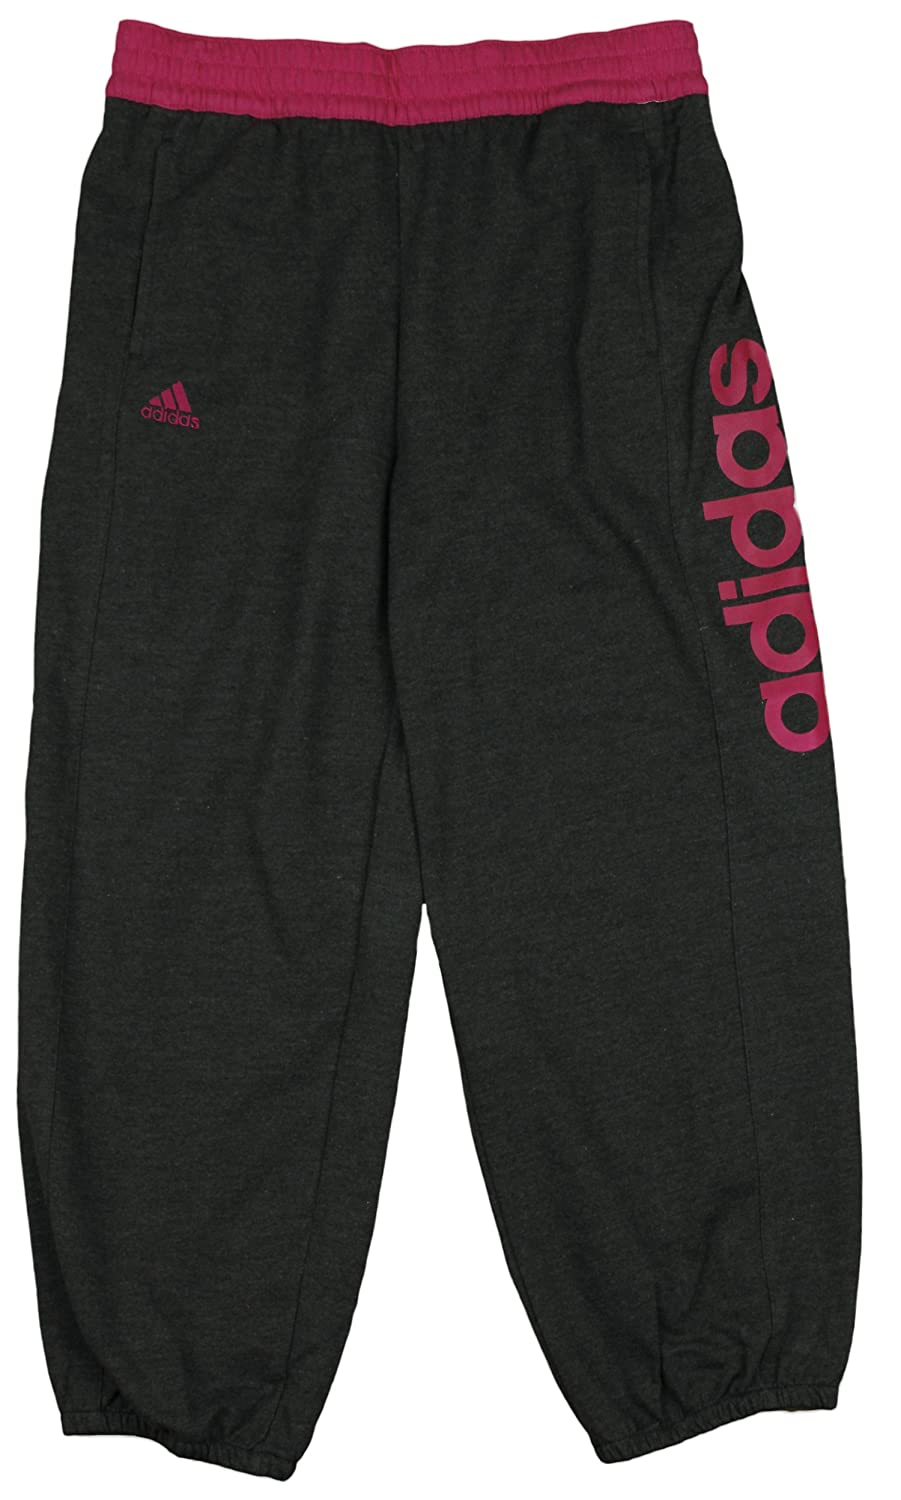 Adidas Youth Big Girls Boyfriend Fleece Capri Pants